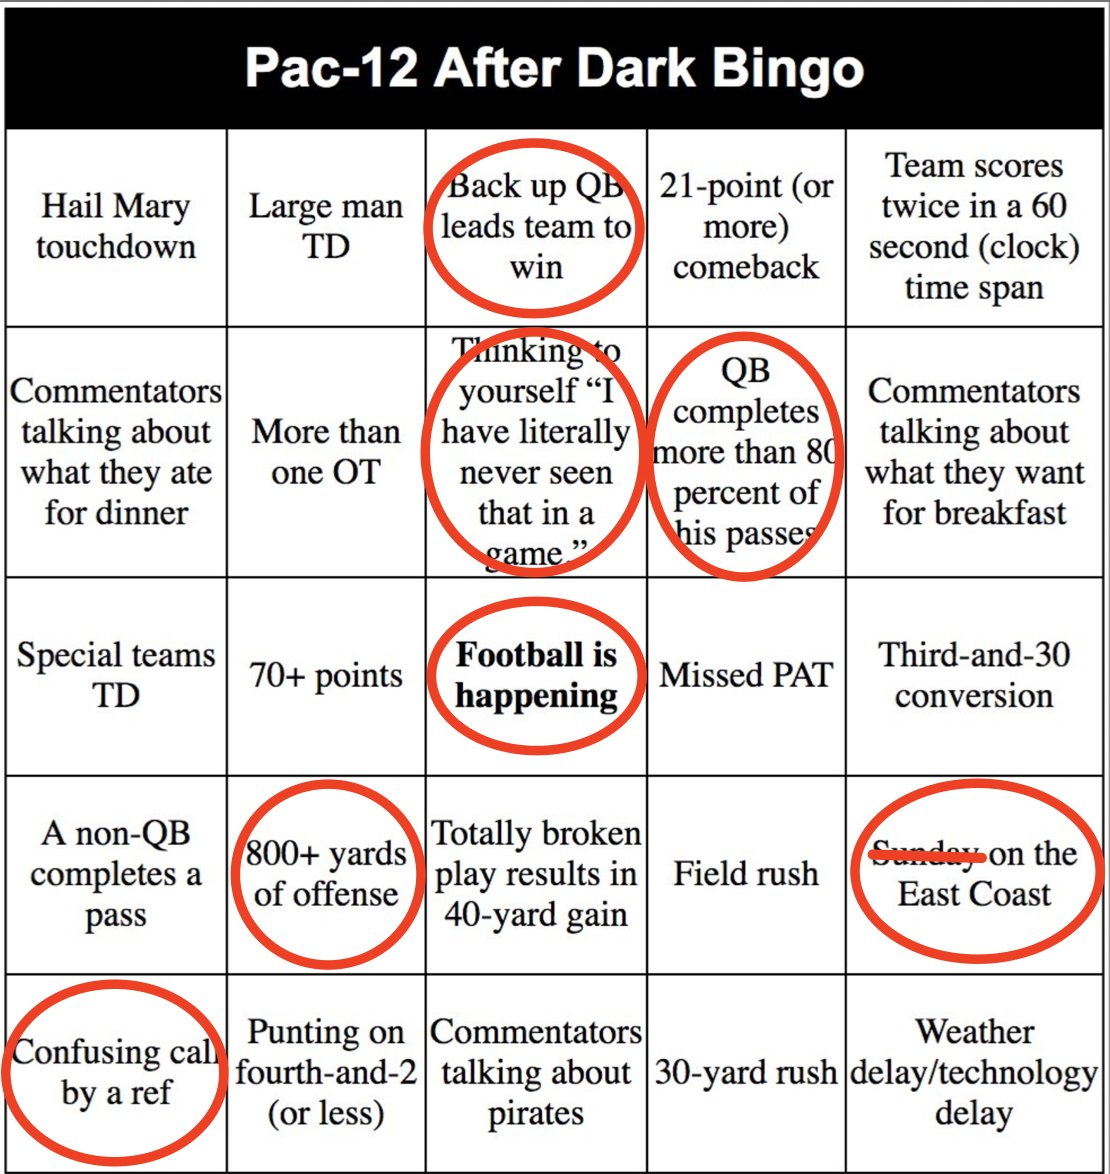 Came very close to hitting @ChantelJennings' #Pac12AfterDark bingo ton...